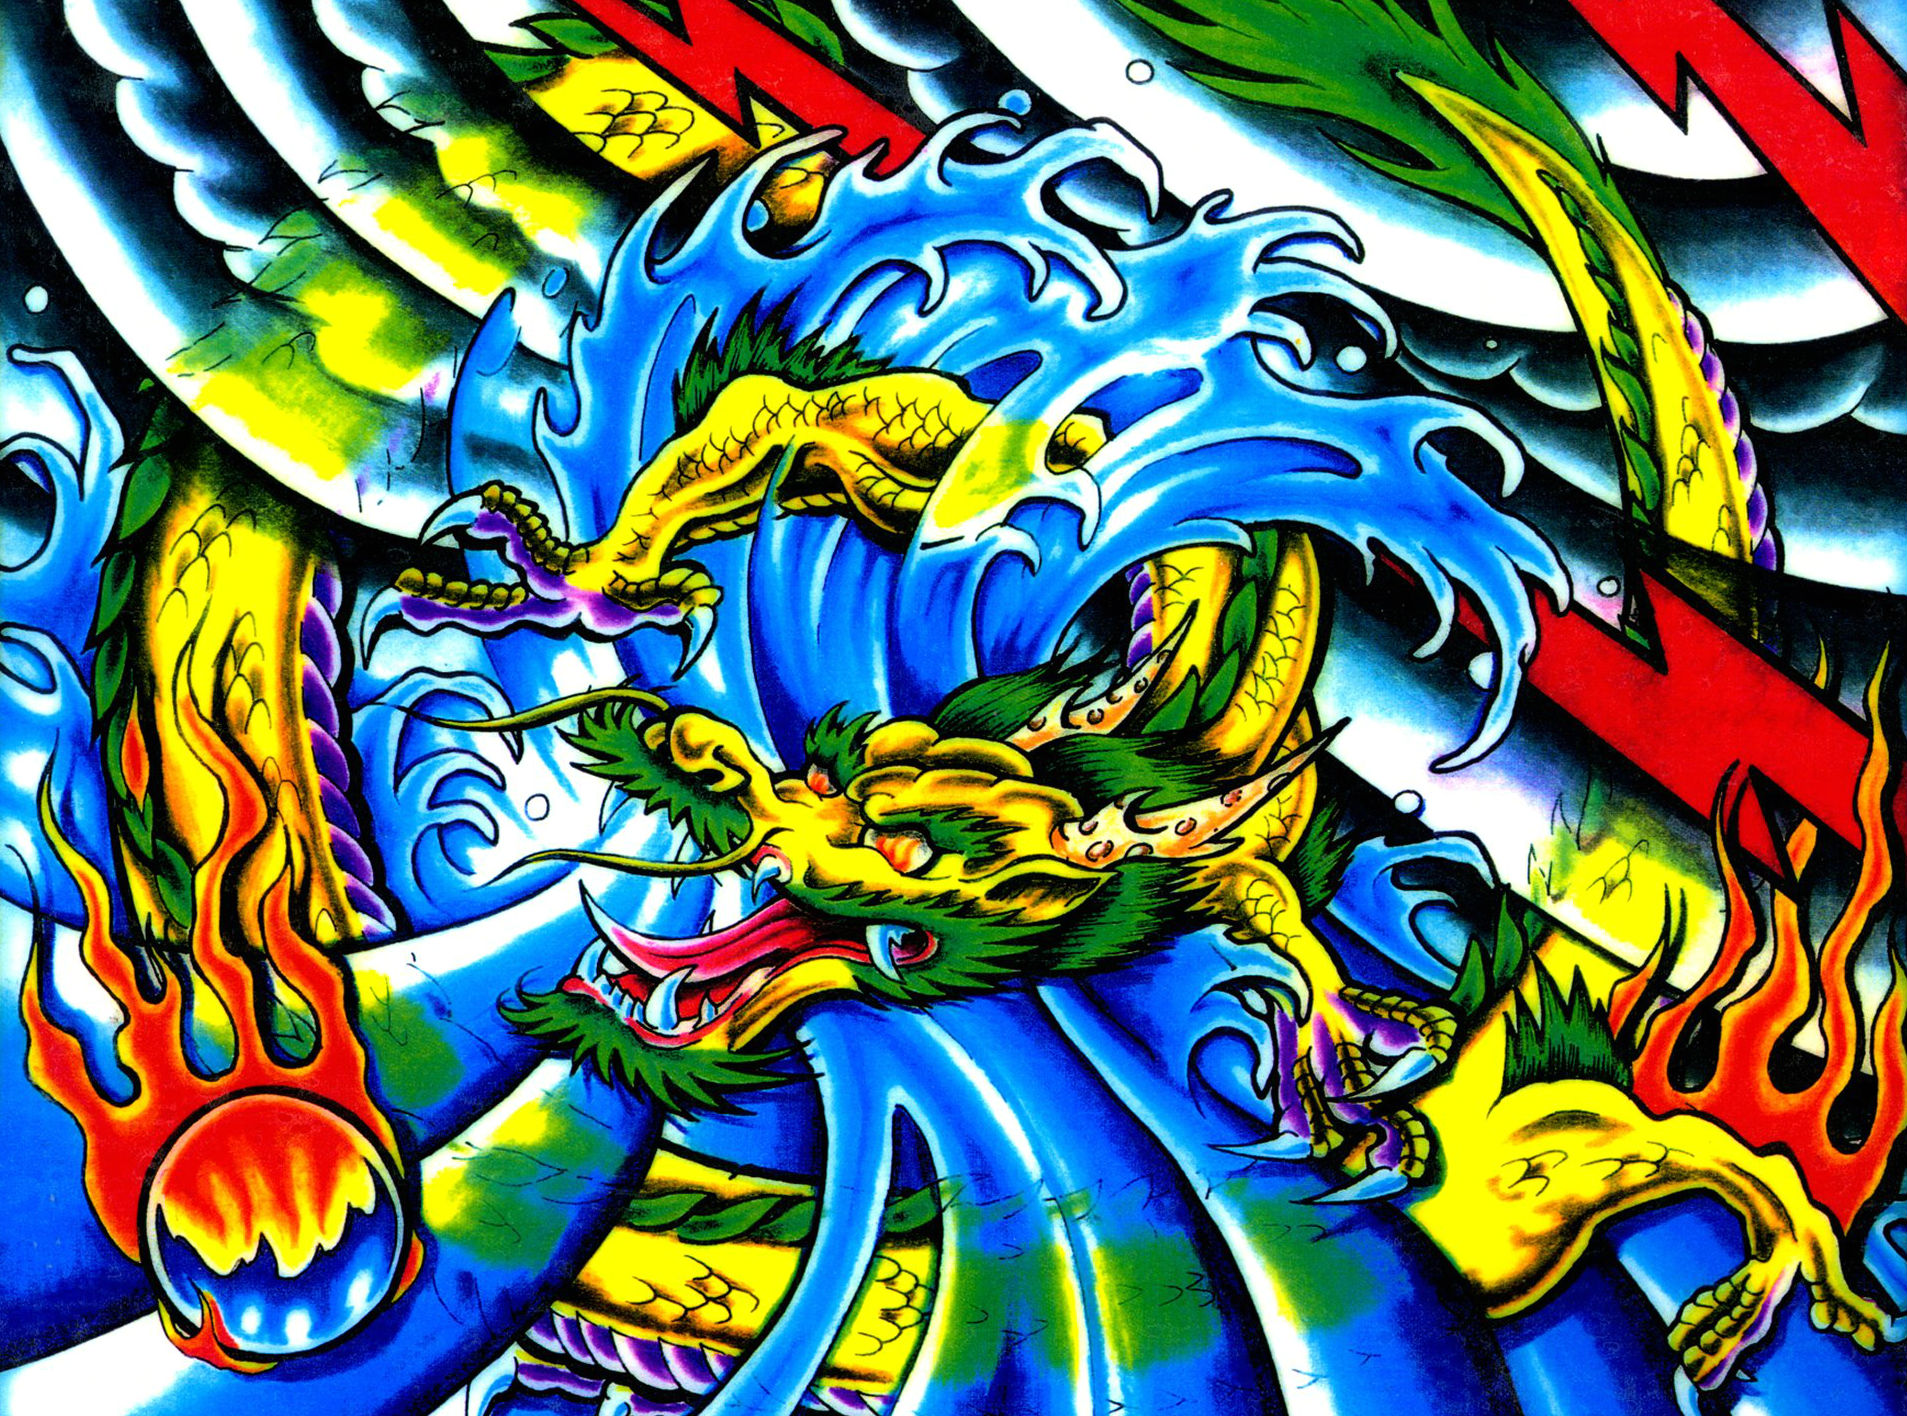 The Girl With The Dragon Tattoo Wallpaper Trippy Twitter Backgrounds Free Download Pixelstalk Net